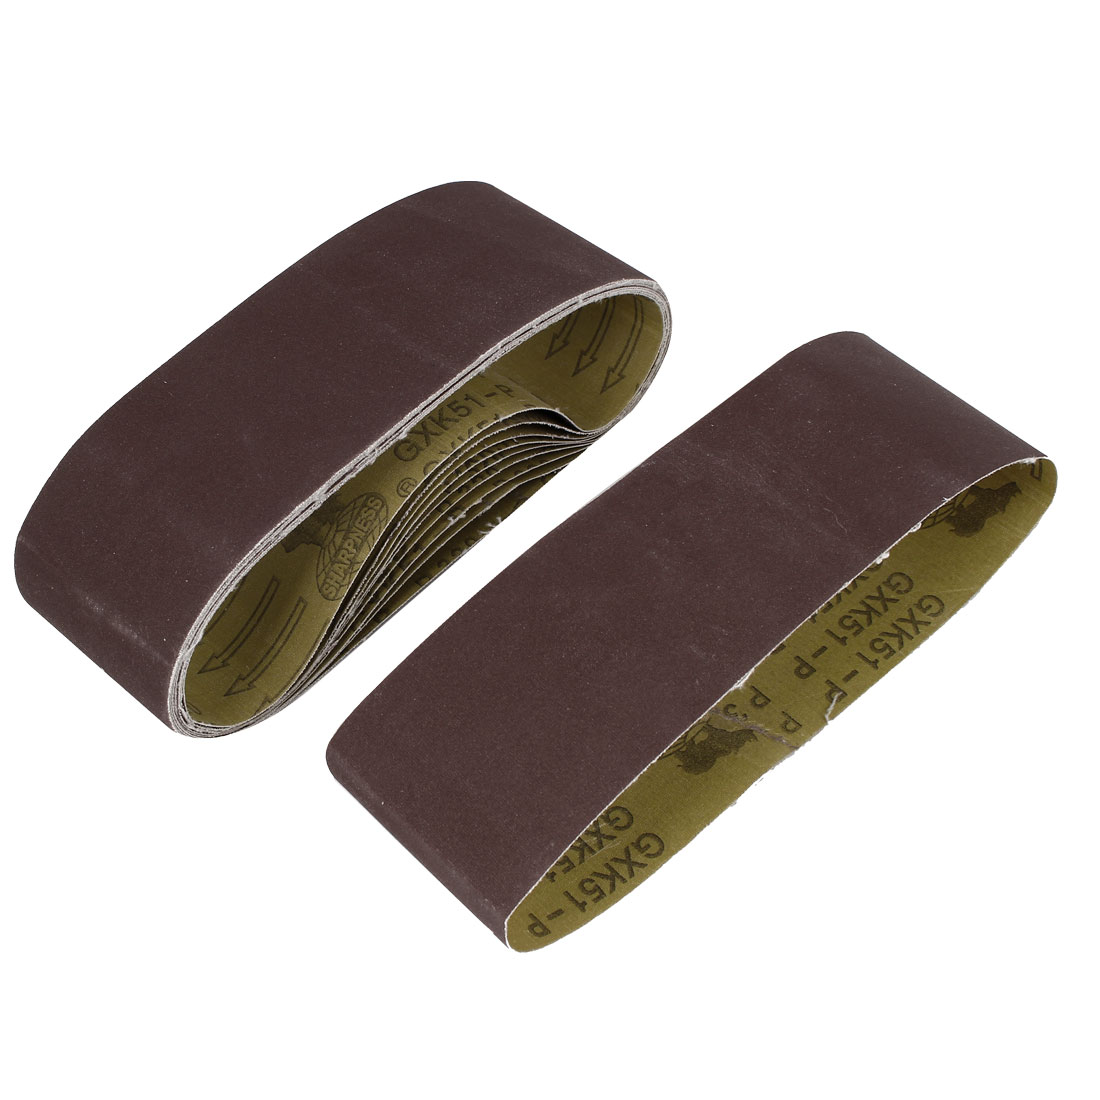 Woodworking 533mmx75mm 320 Grit Abrasive Sanding Belt Sandpaper 10pcs